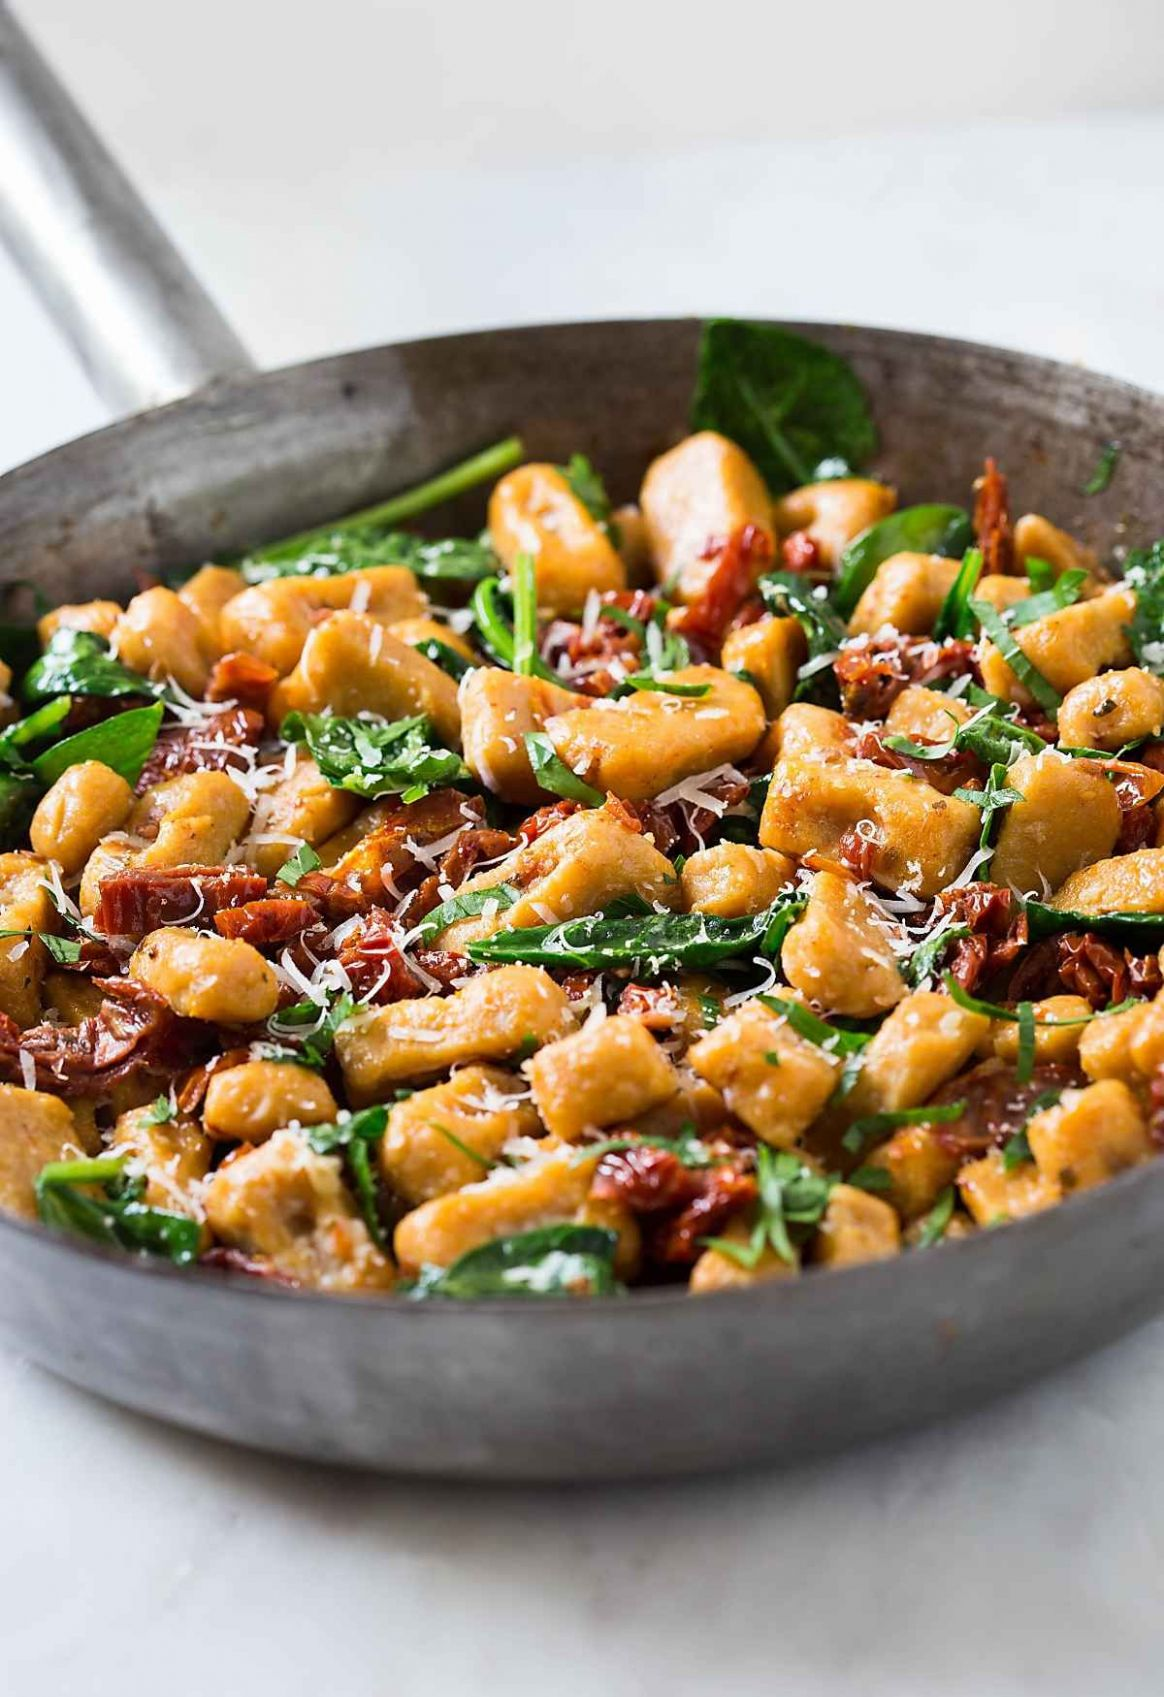 Quick and Easy Sweet potato gnocchi with spinach and sun-dried tomatoes - Recipes Using Potato Gnocchi